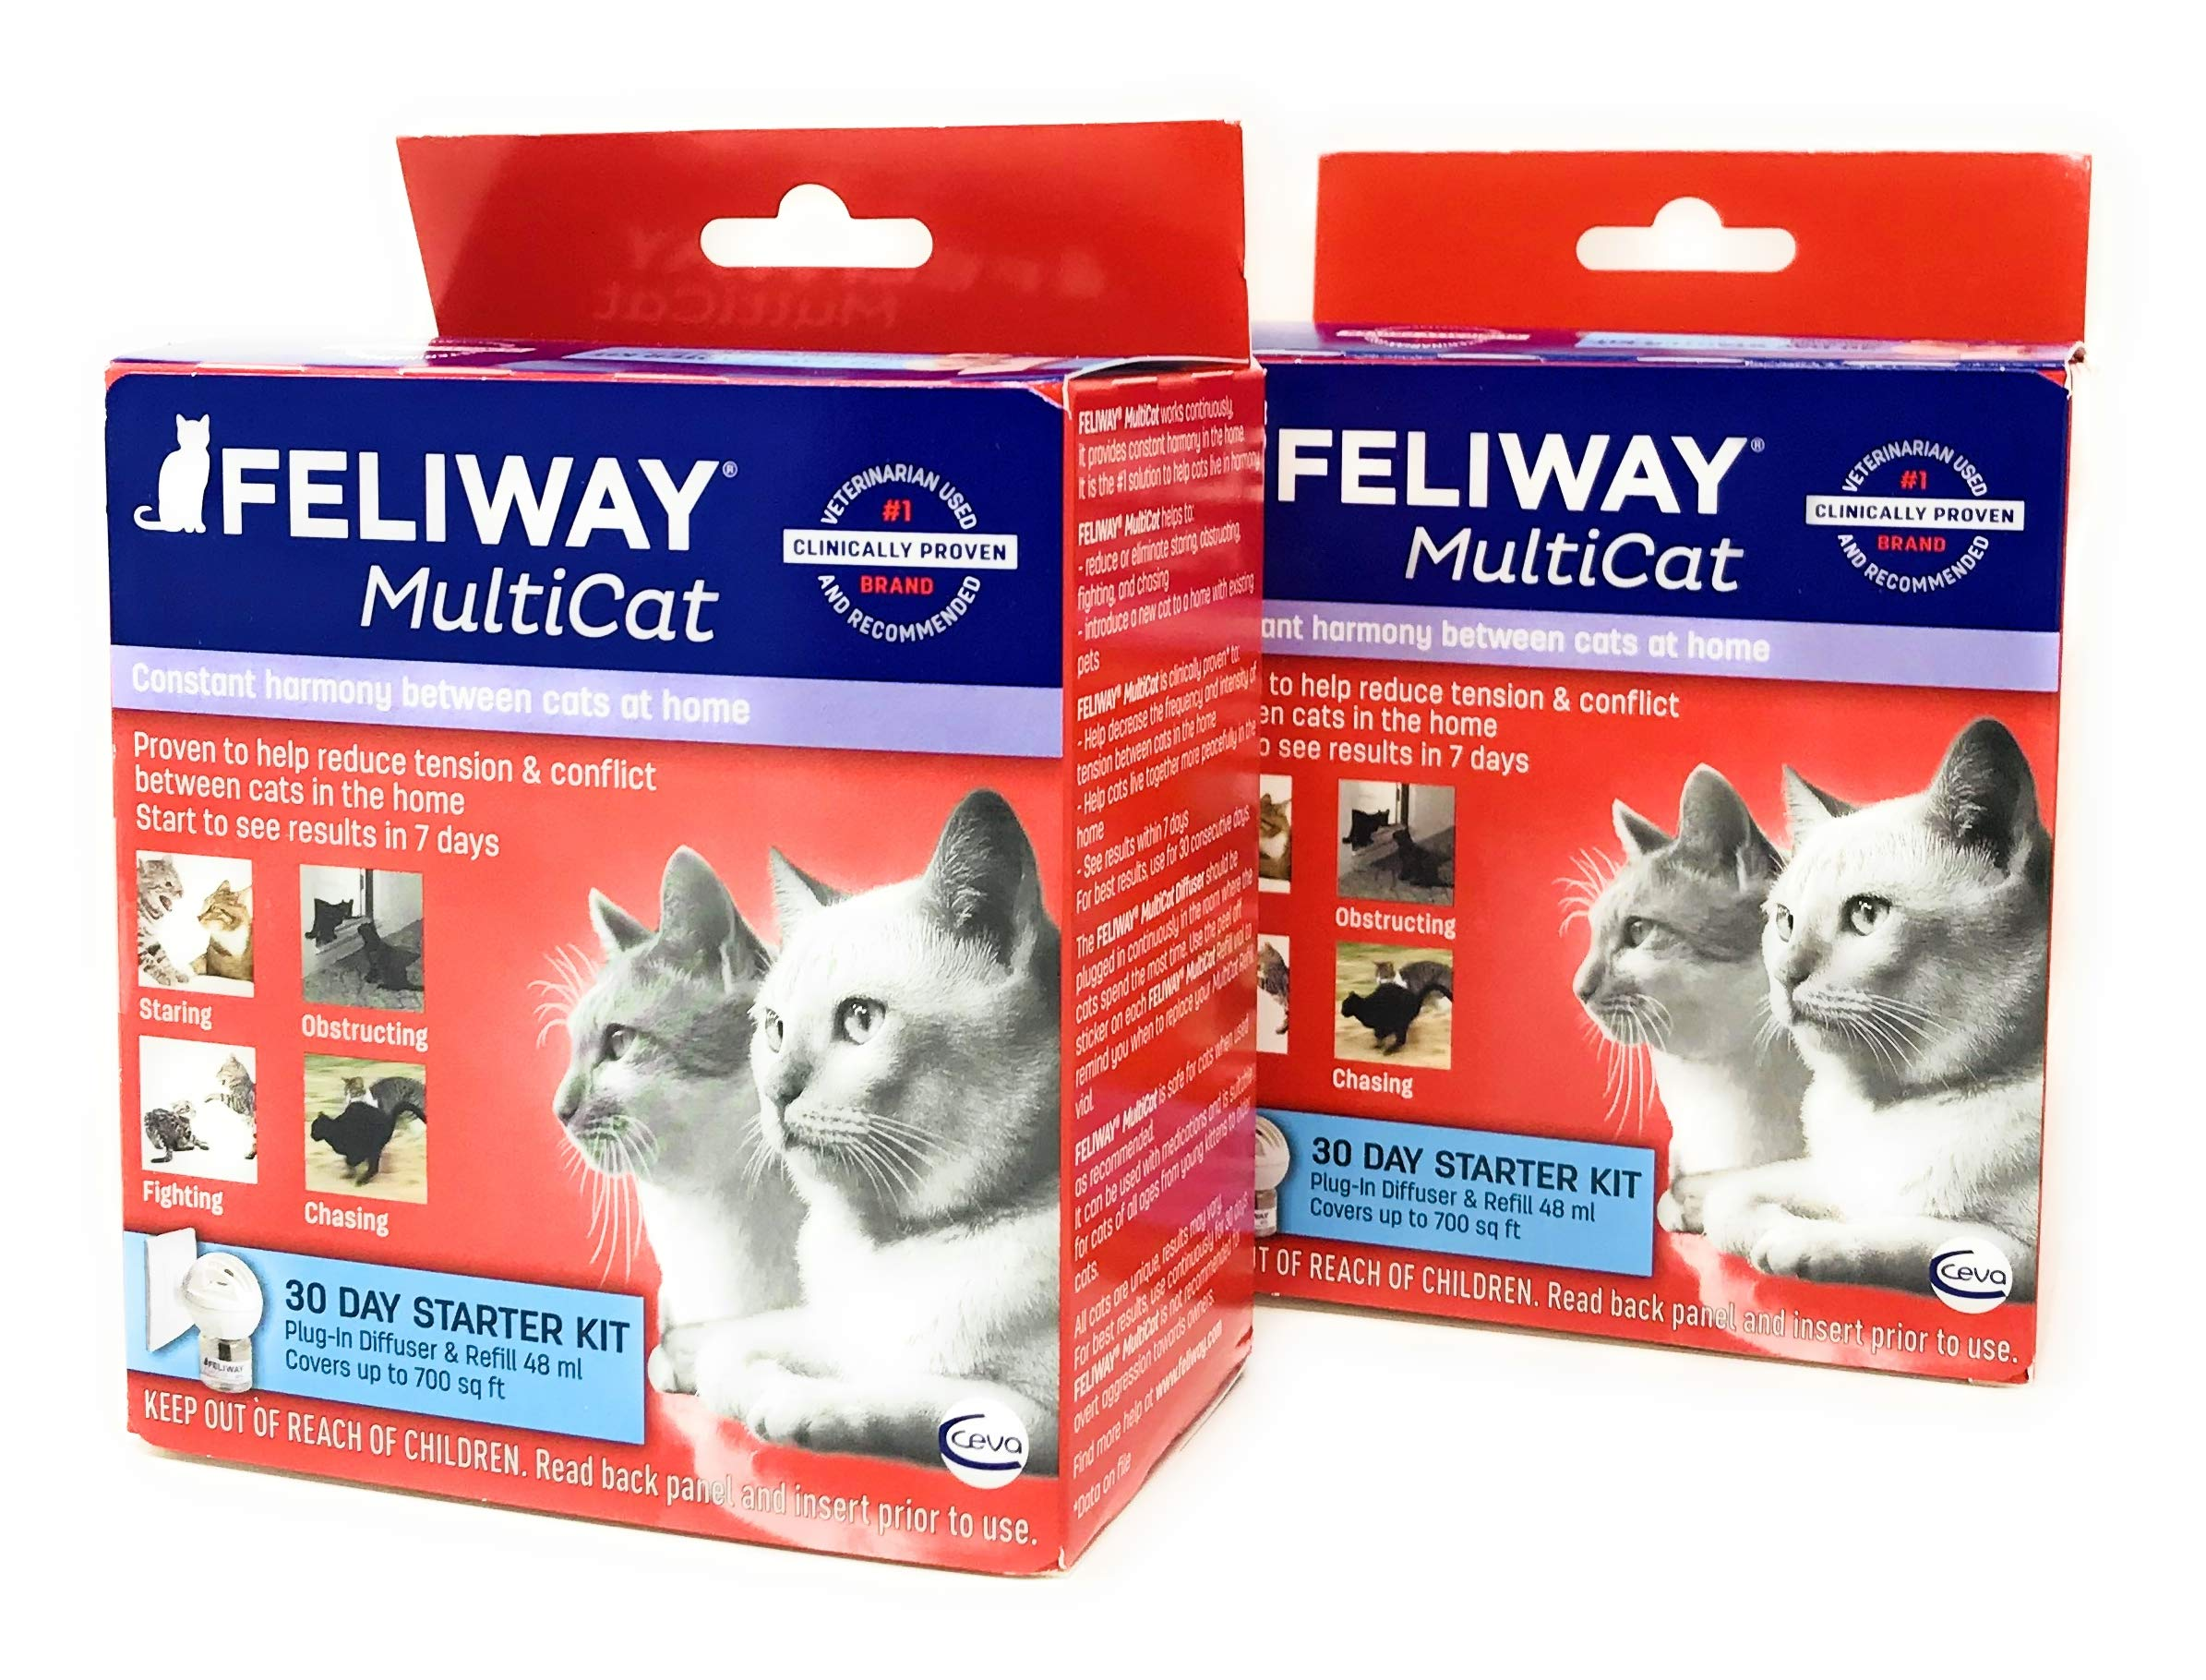 Feliway MultiCat Diffuser Starter Kit | Constant Harmony & Calming Between Cats at Home - 2-Pack (Diffuser + Refill [48mL] x 2)